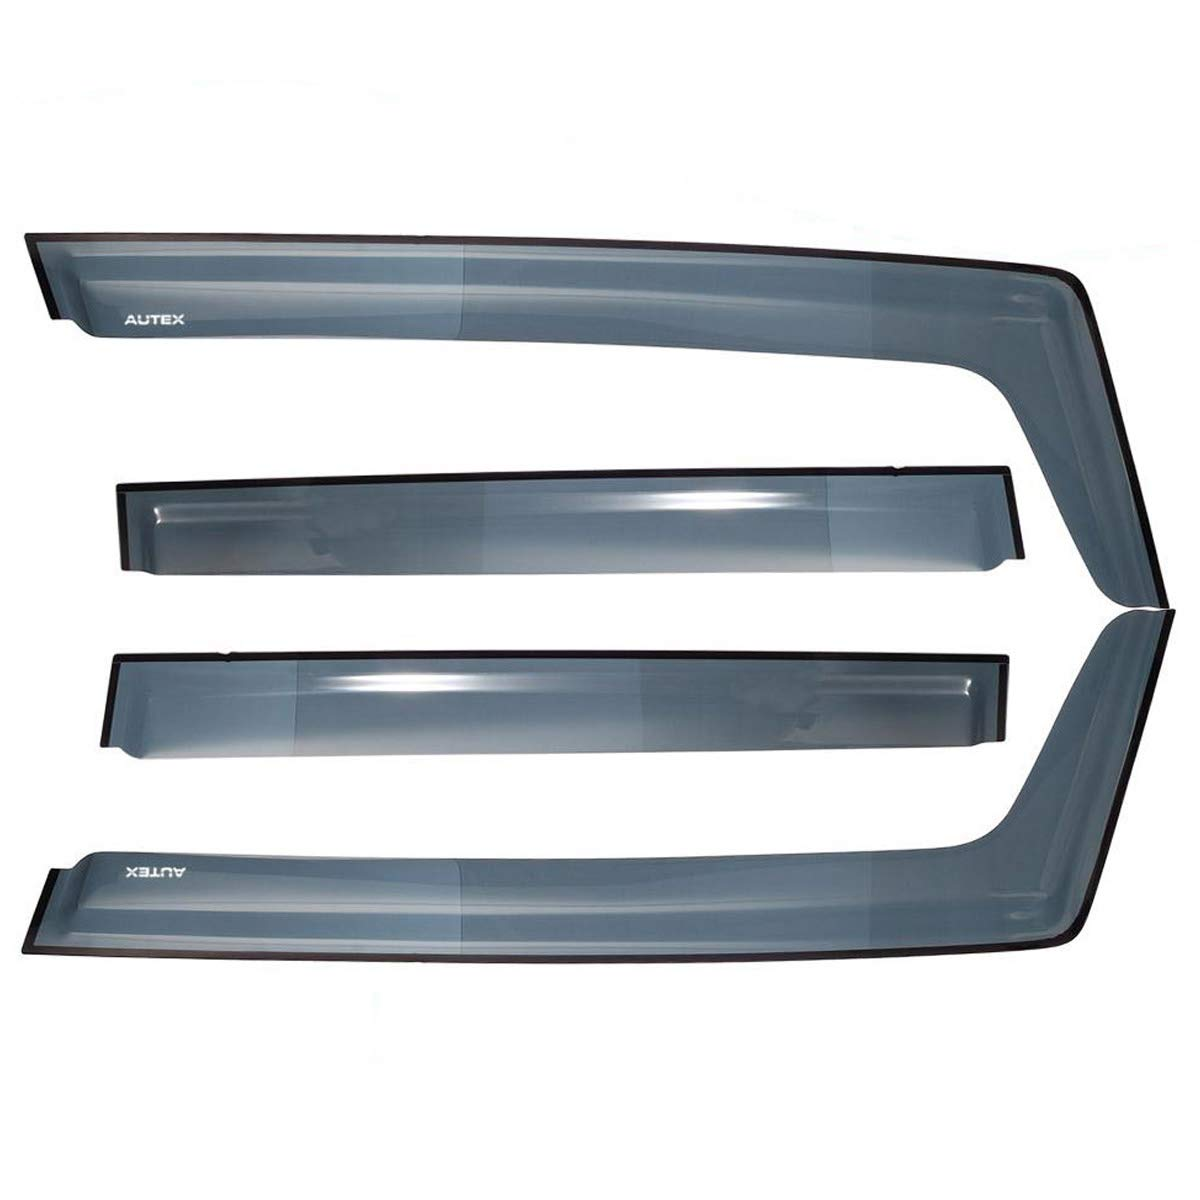 IN CHANNEL RAIN GUARDS FOR JEEP RENEGADE FITS 2015-2016 4PC SET